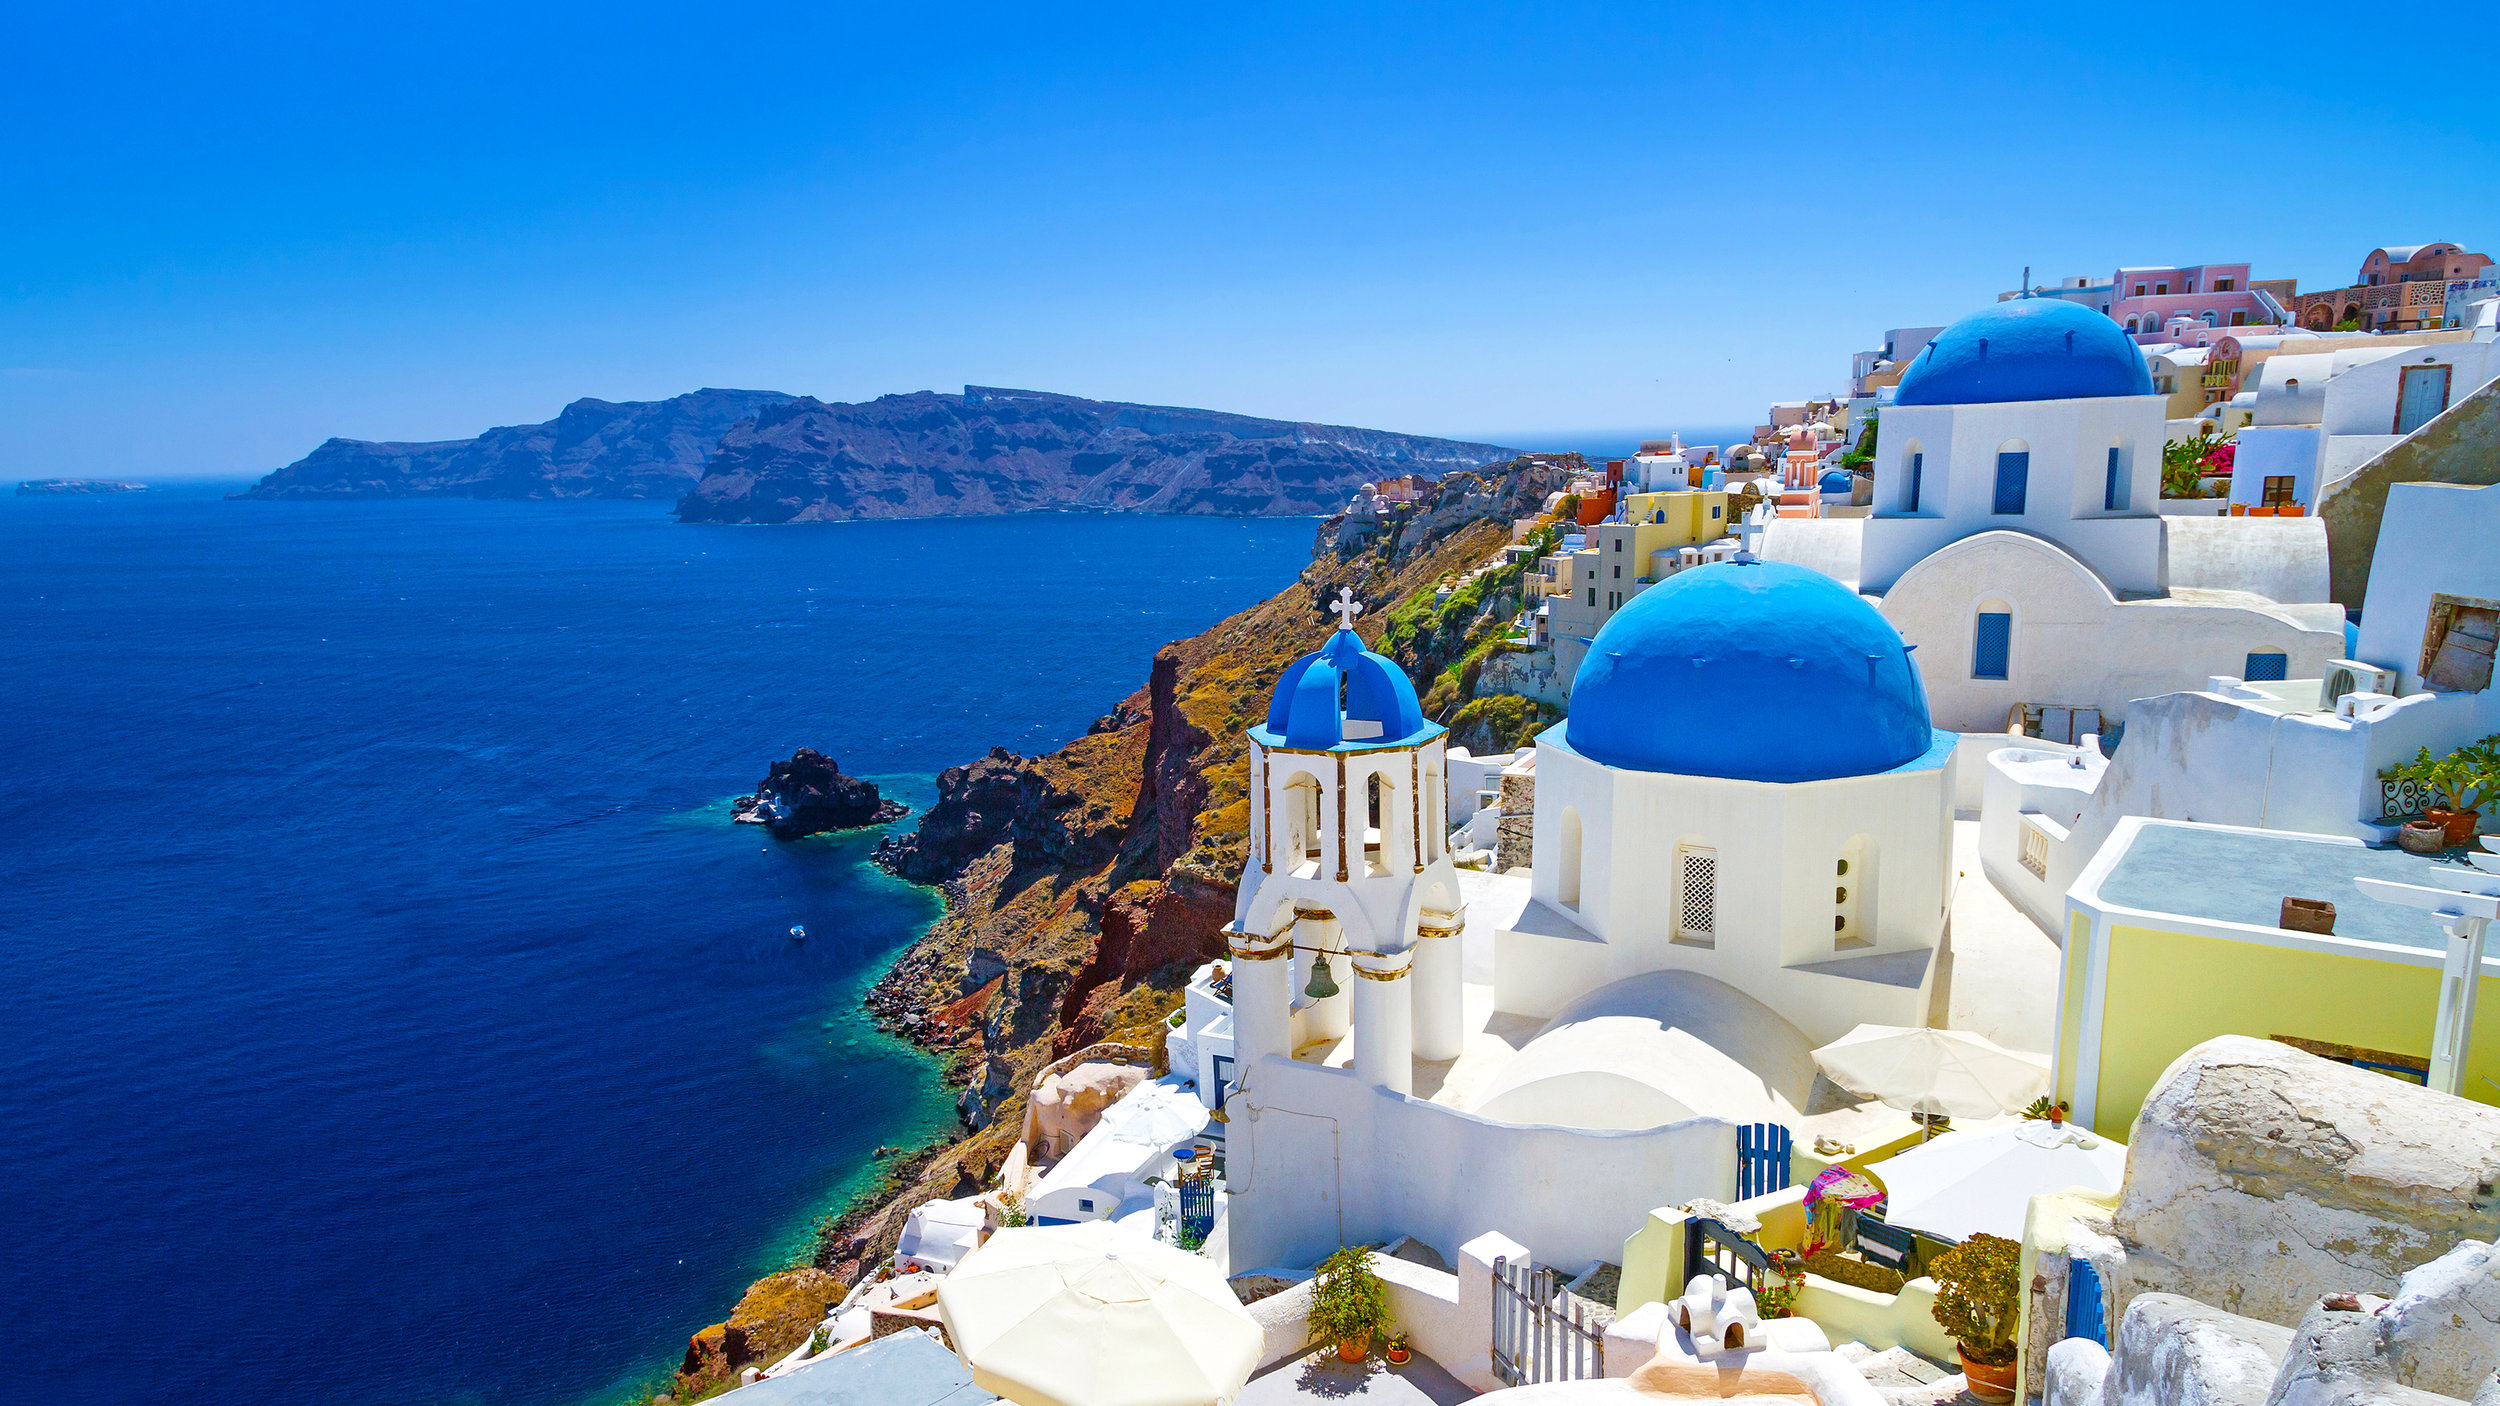 Santorini-Cyclades-Islands-Aegean-Sea-Greece-4K-Wallpaper-1.jpg